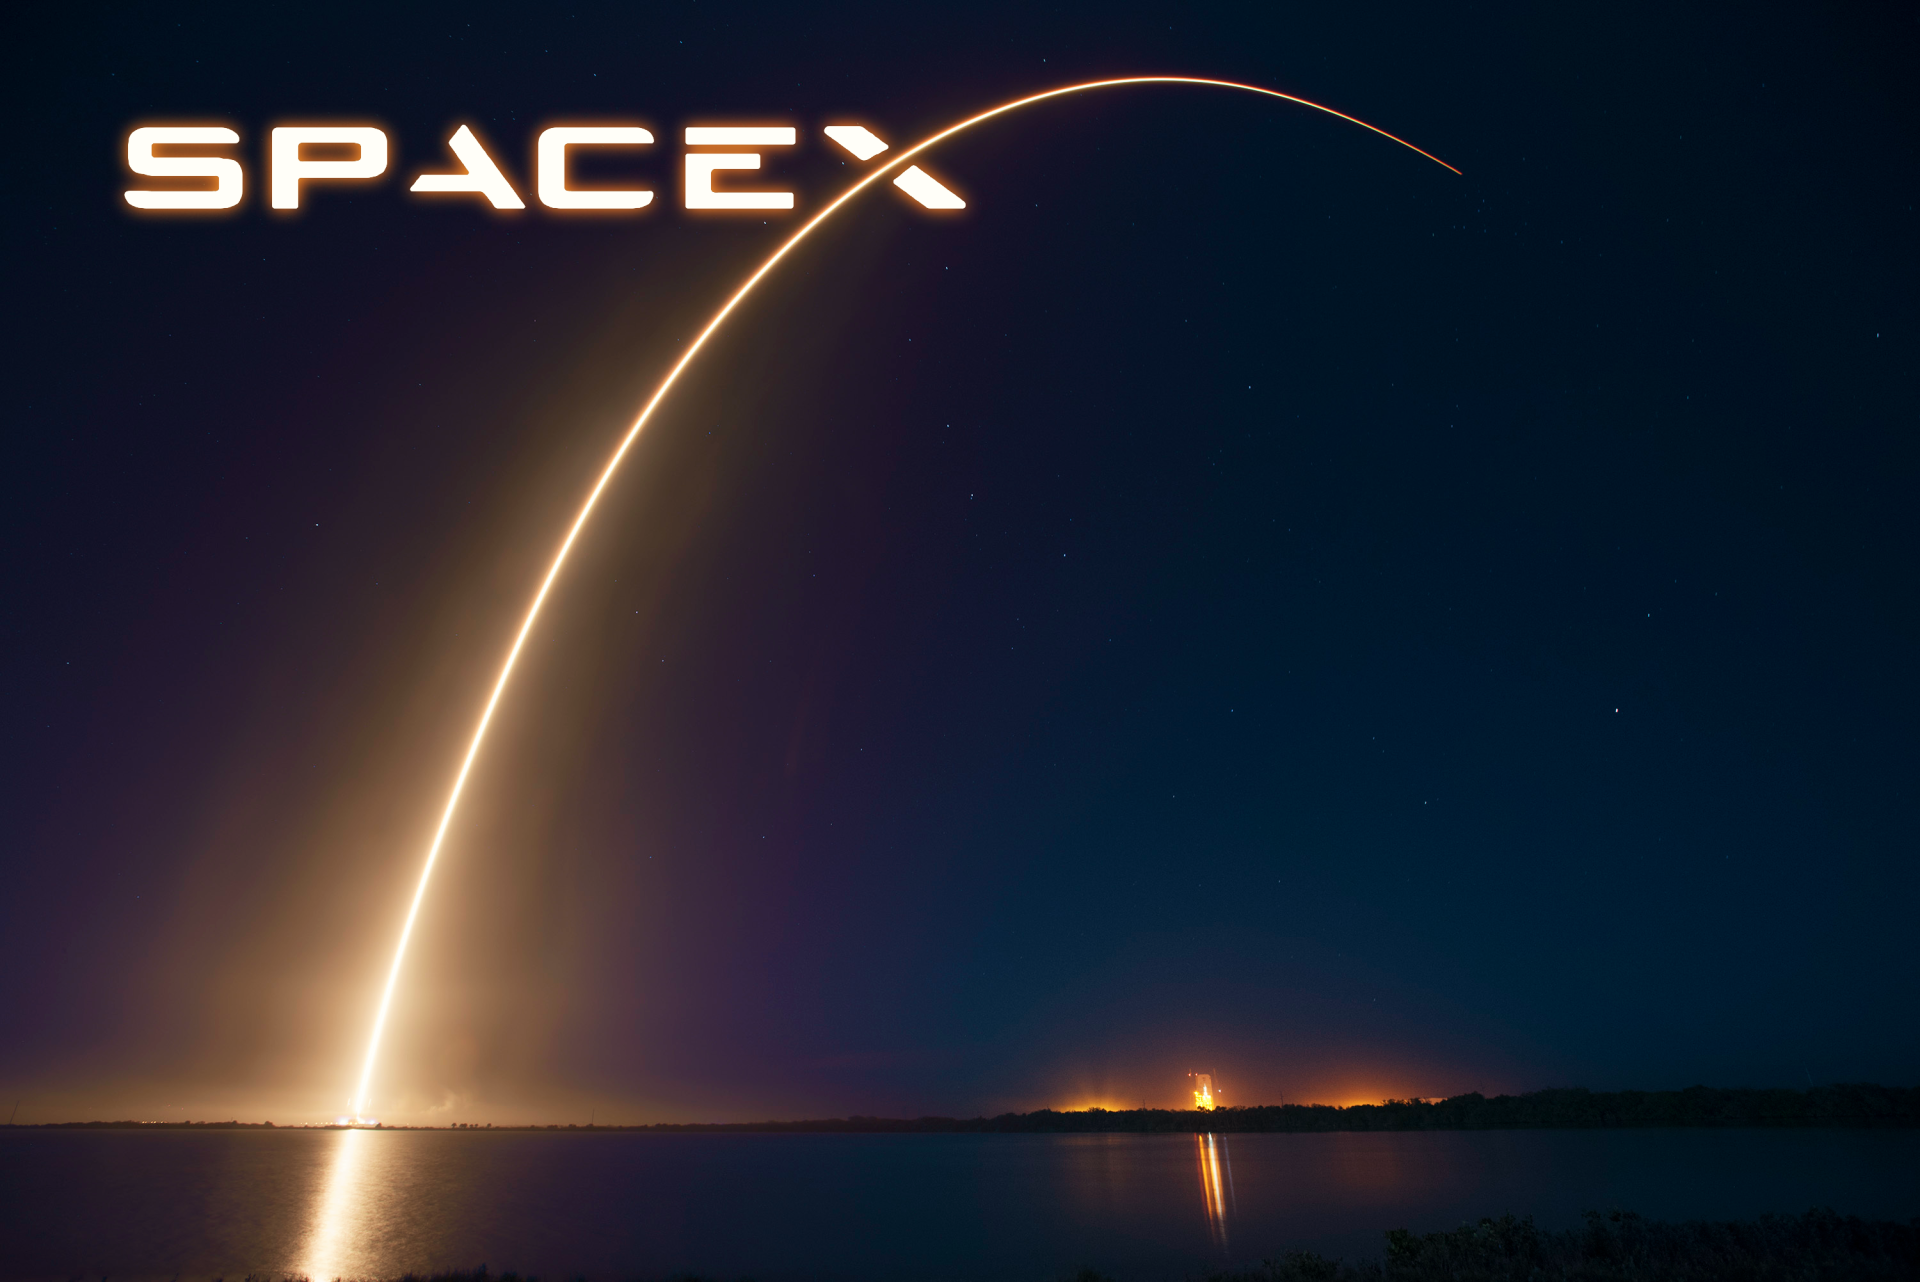 技术 - SpaceX  Falcon 9 壁纸